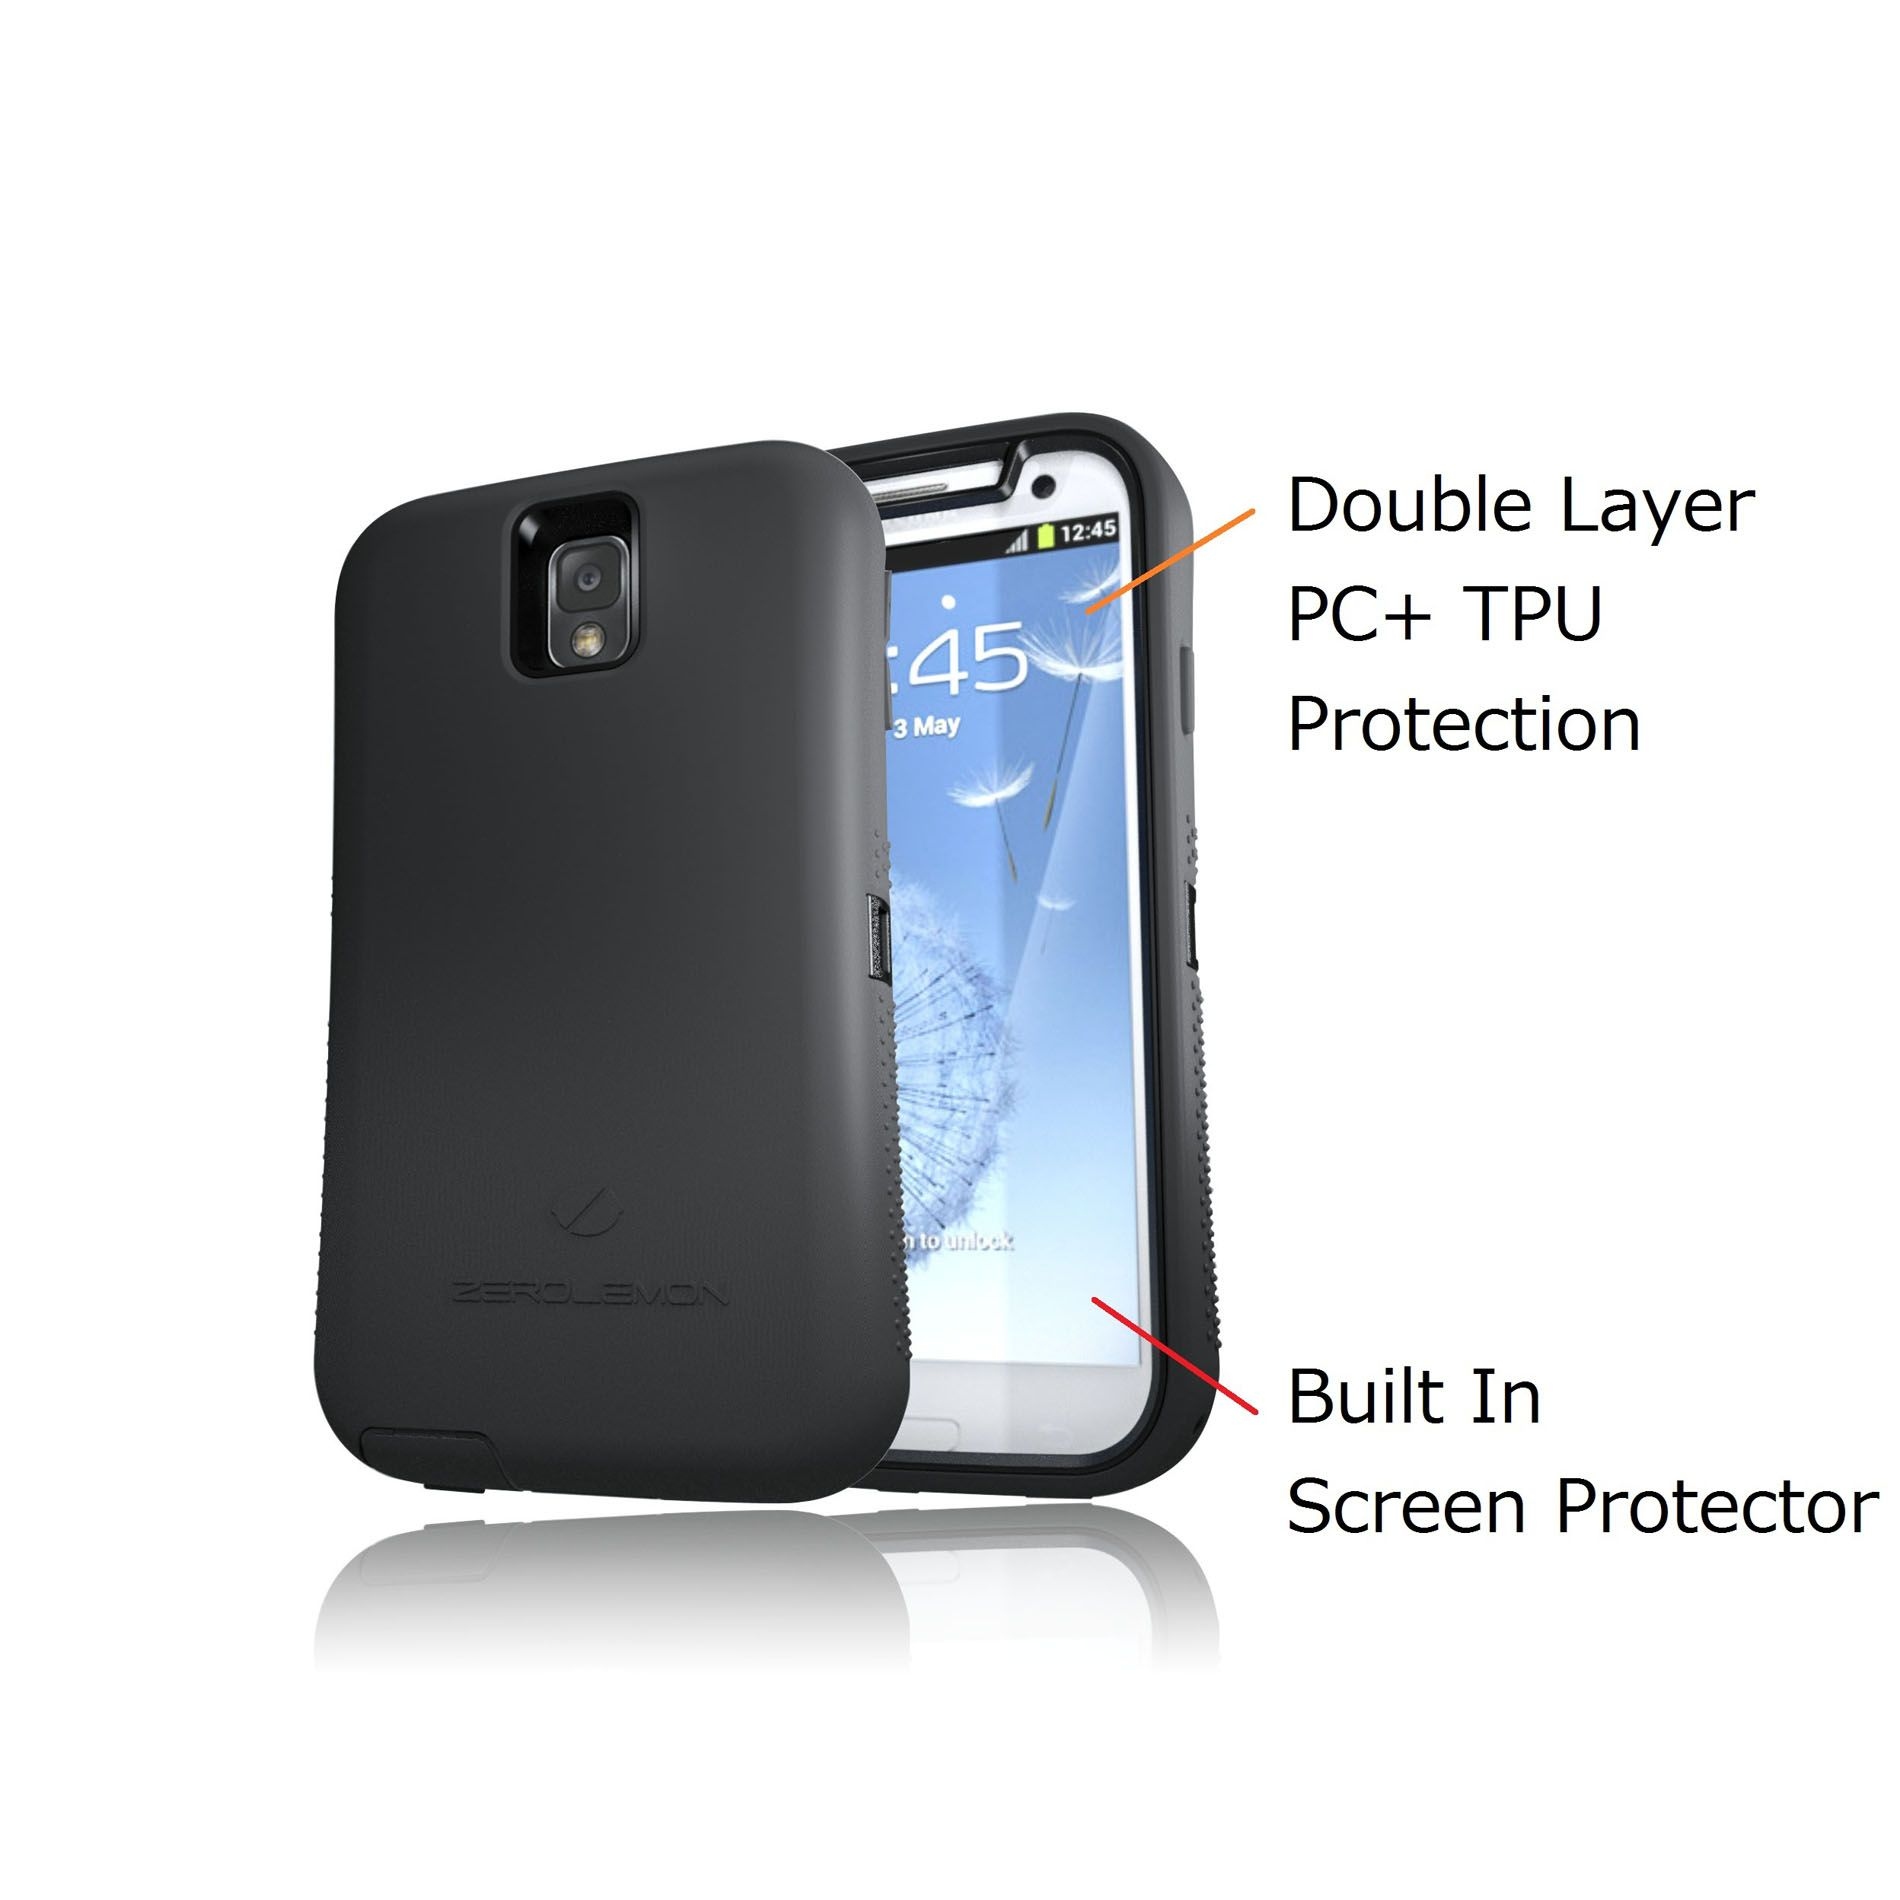 ZeroLemon ZeroShock Black/Black Dual Layer Rugged Case + Screen Protector + Holster/Kickstand for Galaxy Note 3